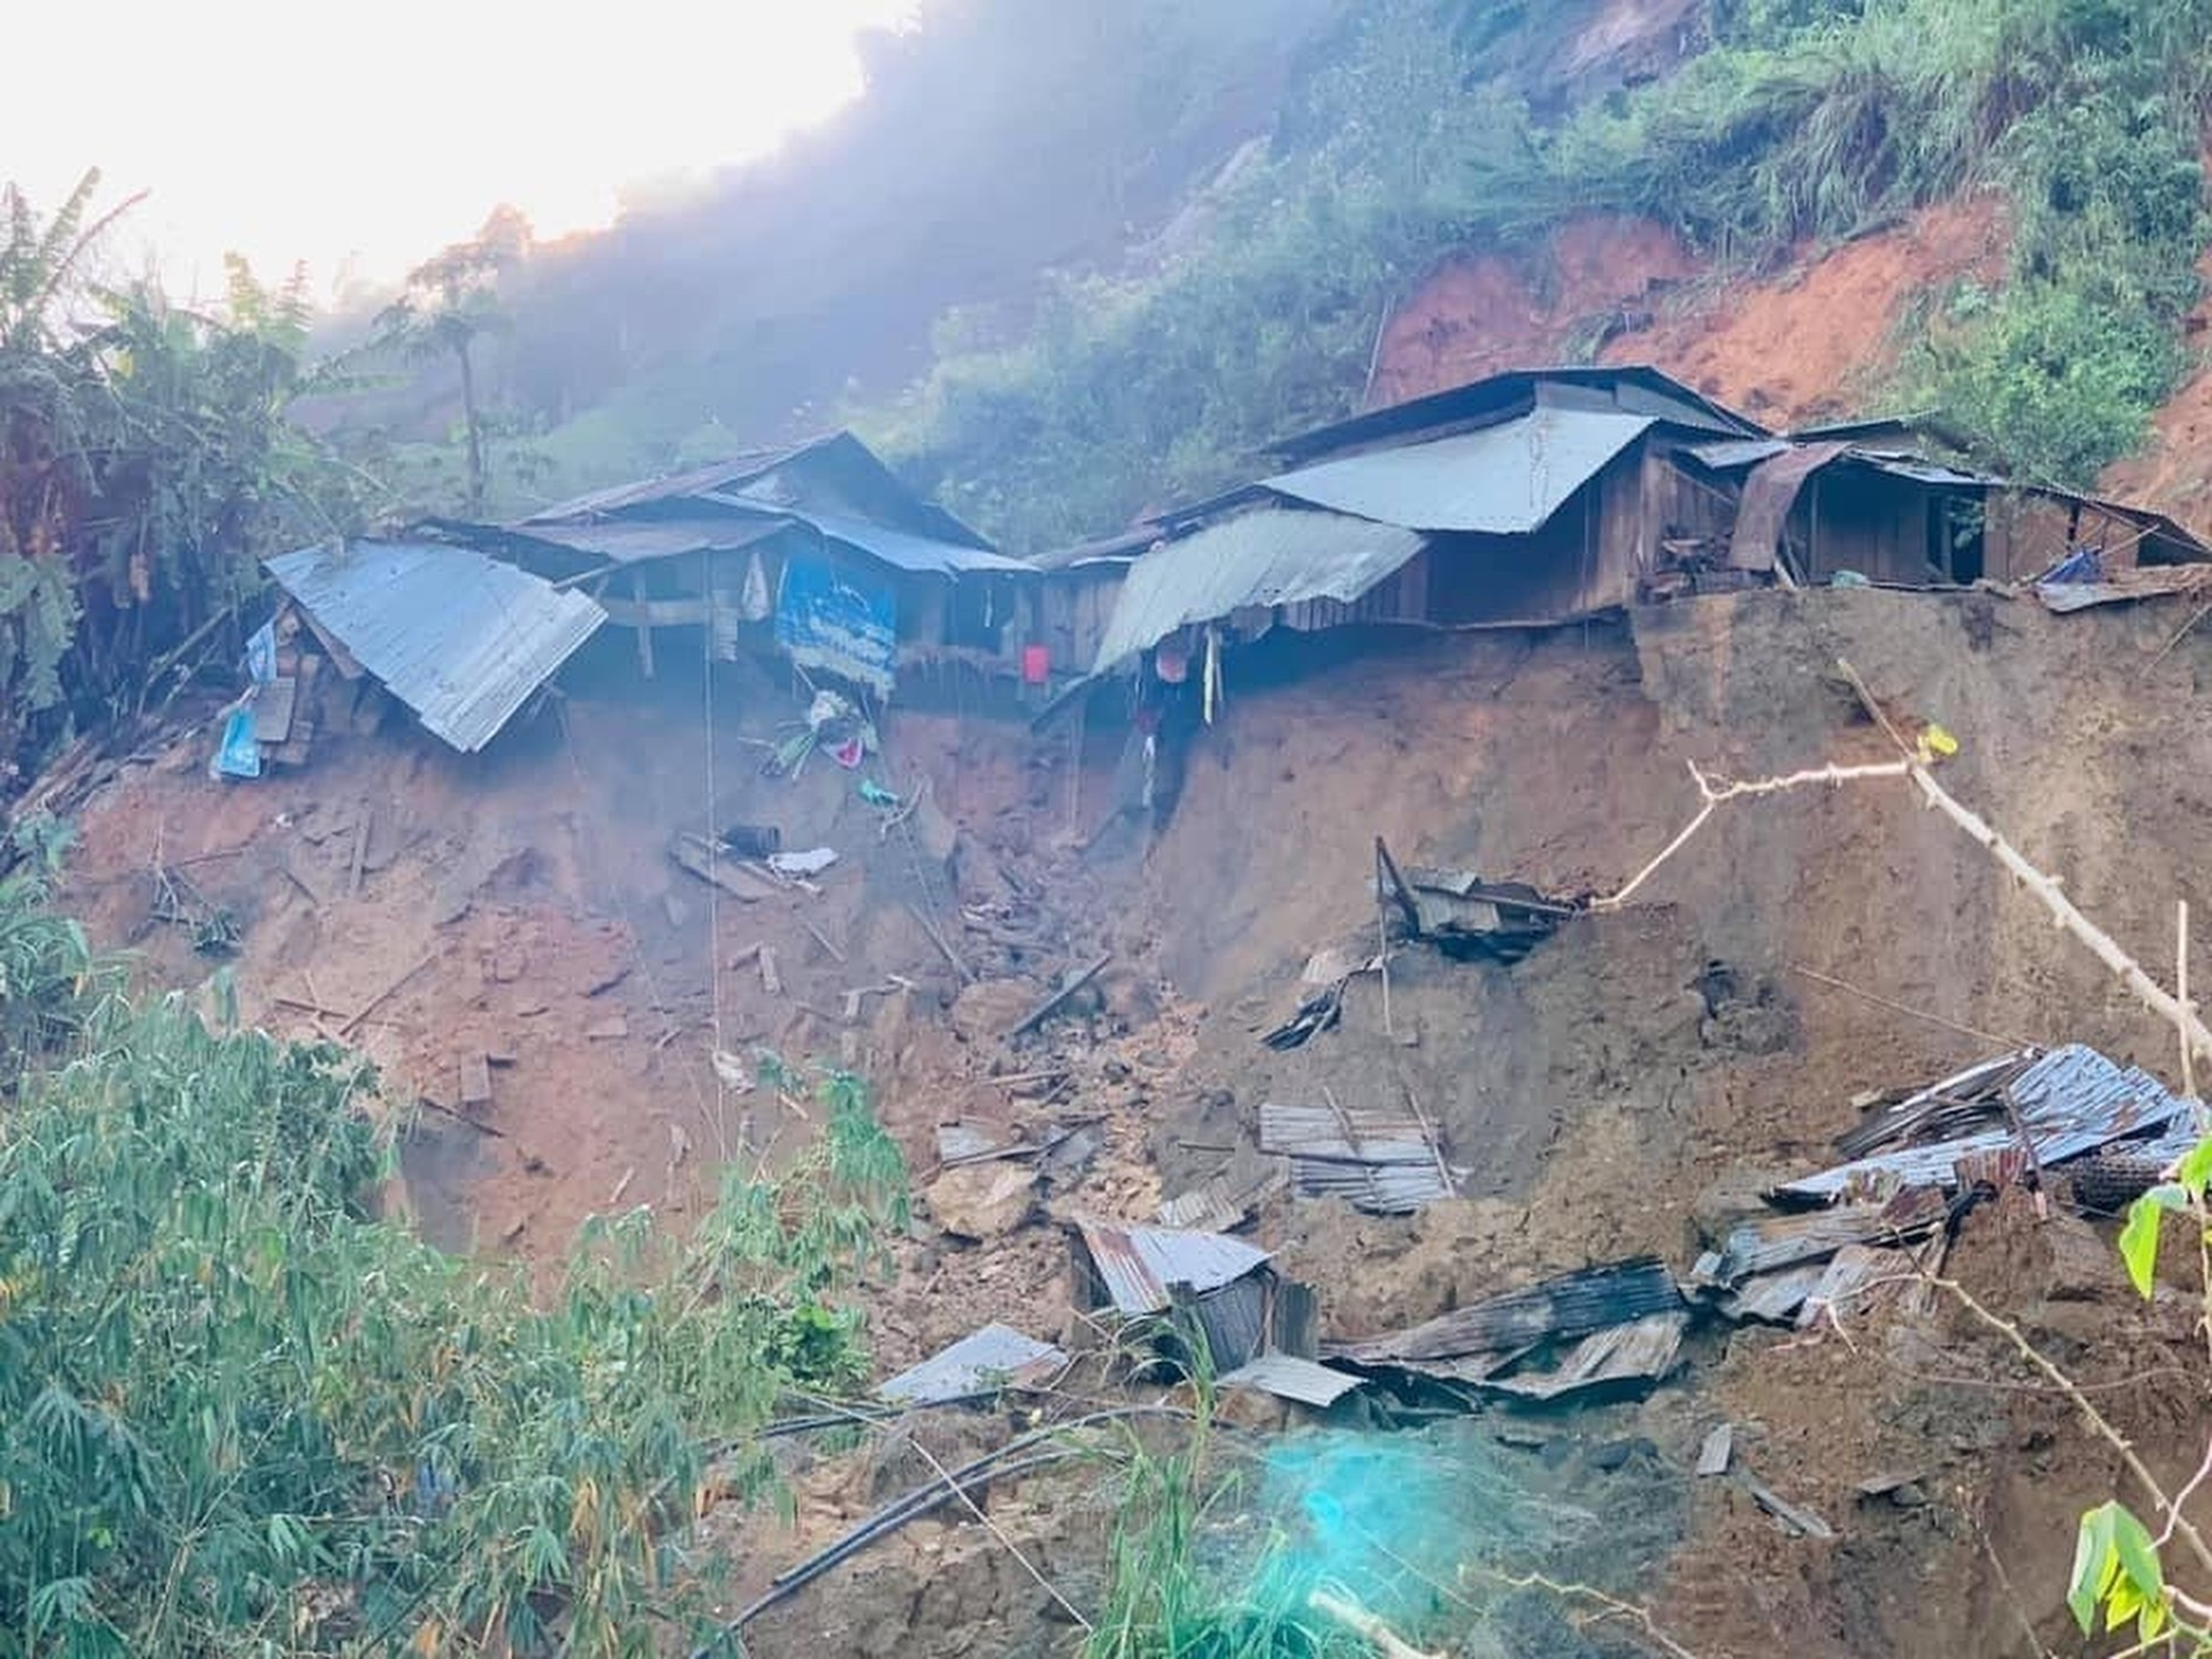 A landslide damages houses in a village in Phuoc Loc district, Quang Nam province, Vietnam Thursday, Oct. 29, 2020. Three separated landslides triggered by Typhoon Molave killed more than a dozen villagers in the province as rescuers scramble to recover more victims.